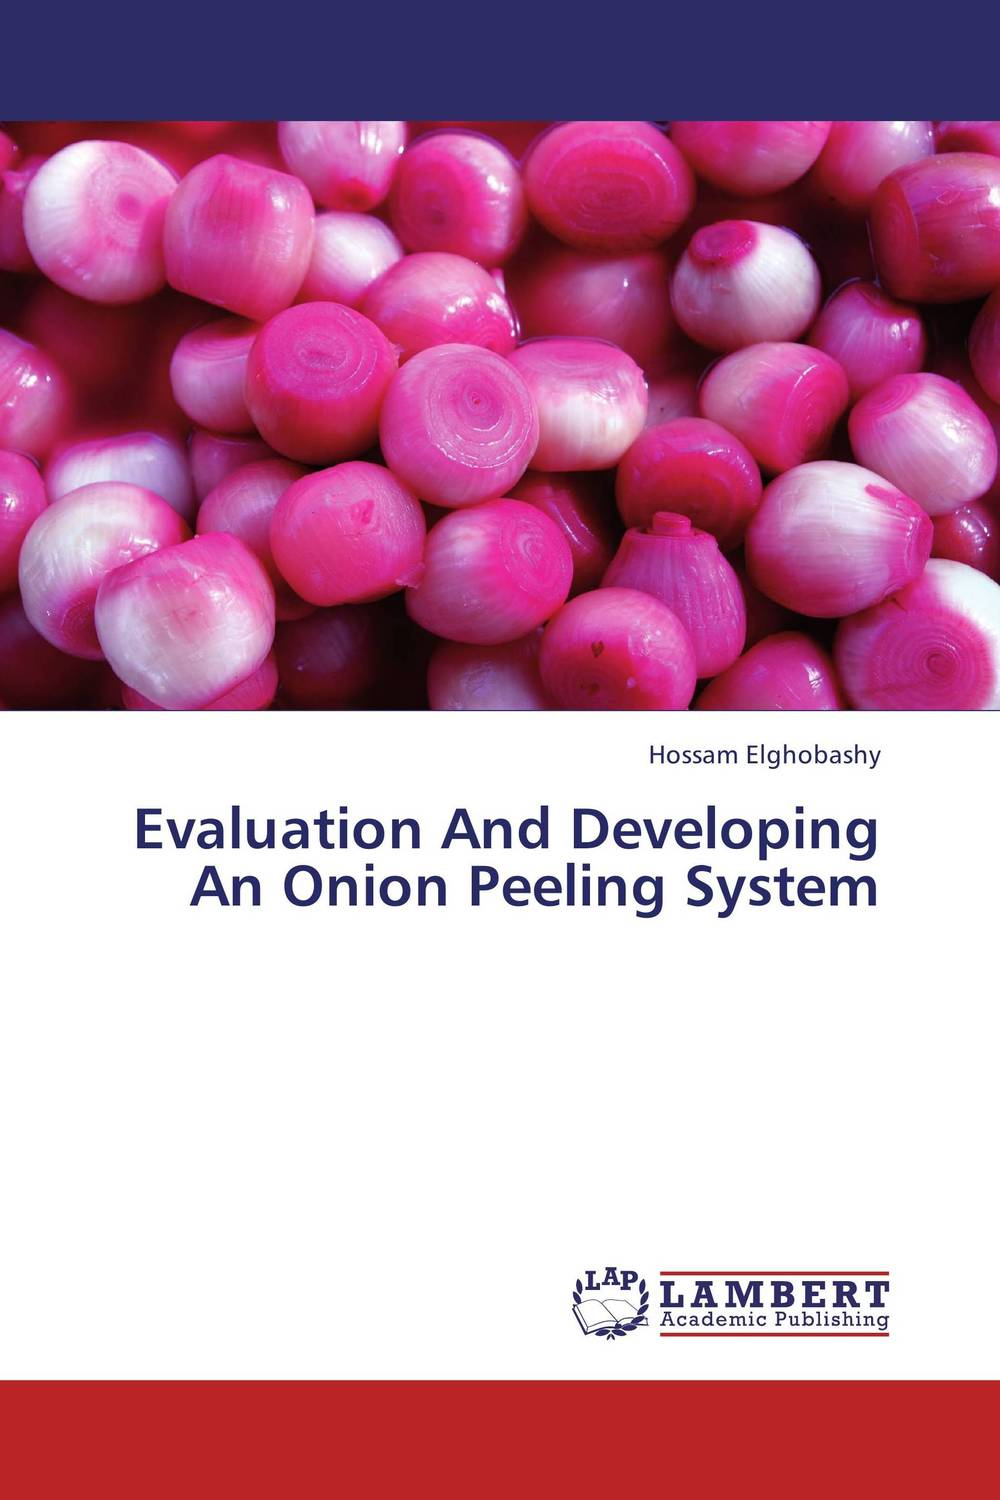 Evaluation And Developing An Onion Peeling System empirical evaluation of operational efficiency of major ports in india